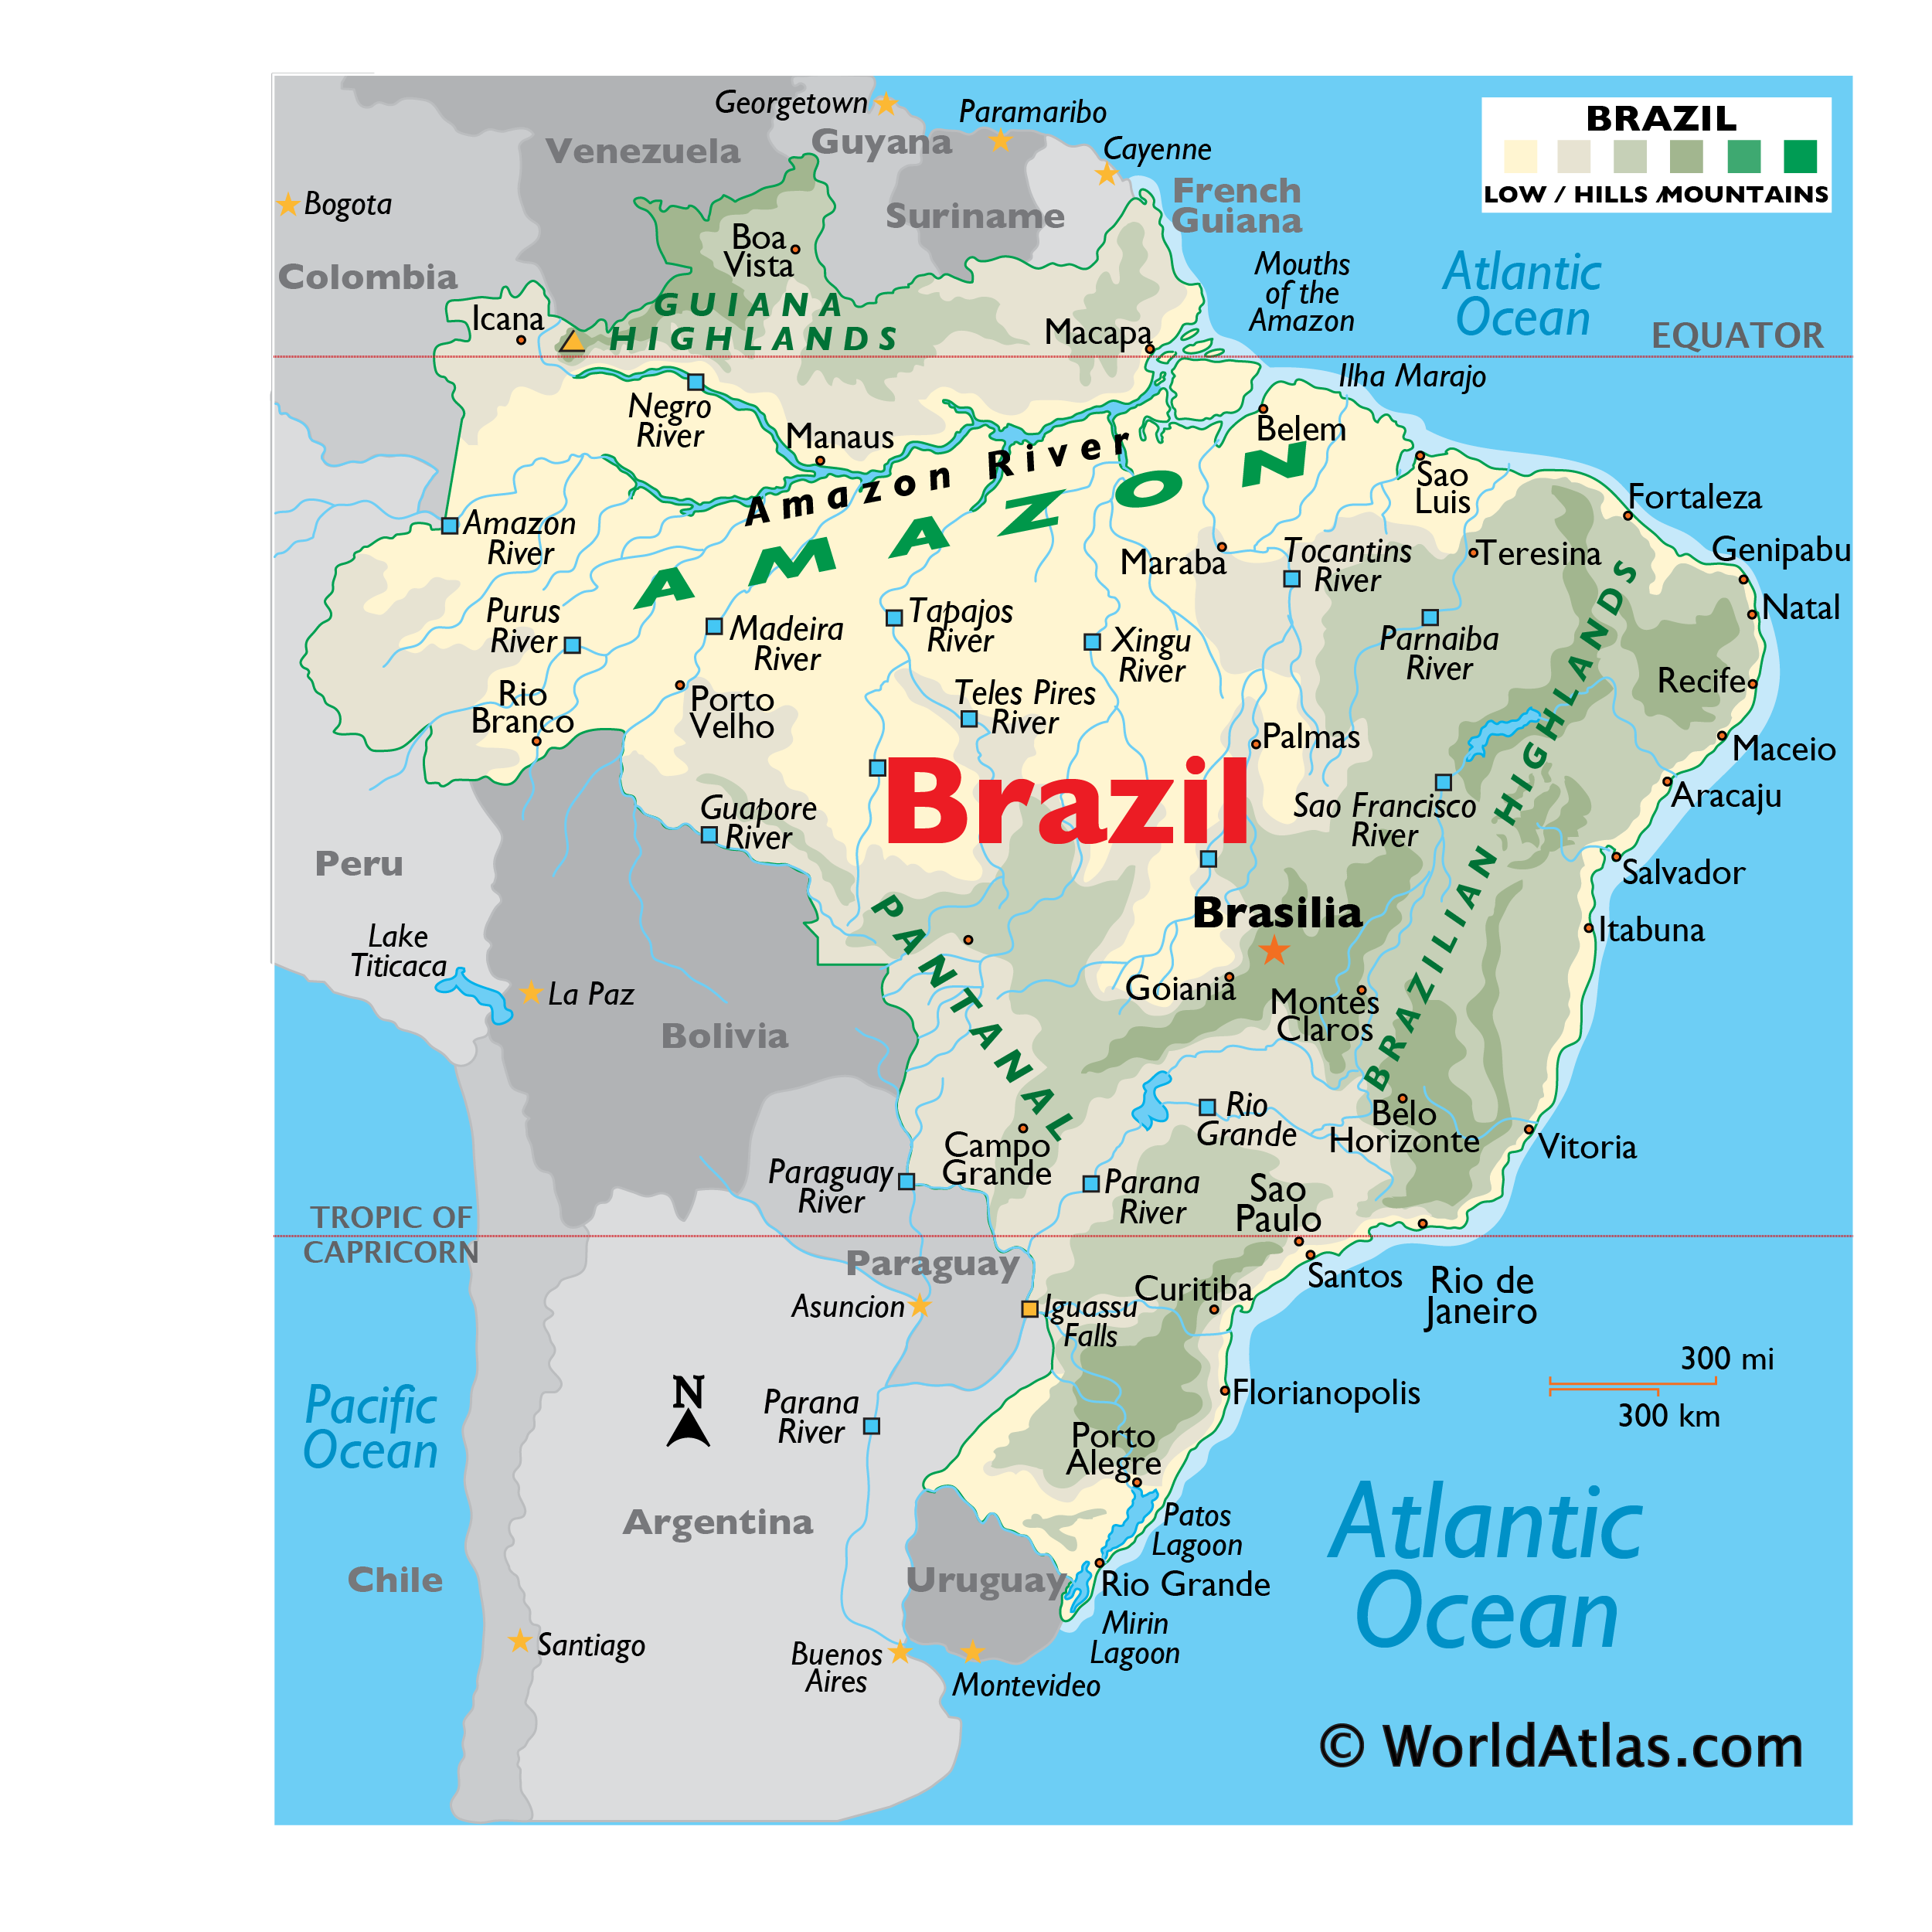 Physical Map of Brazil showing relief, rivers, mountains ranges, major lakes, important cities, bordering countries, and more.